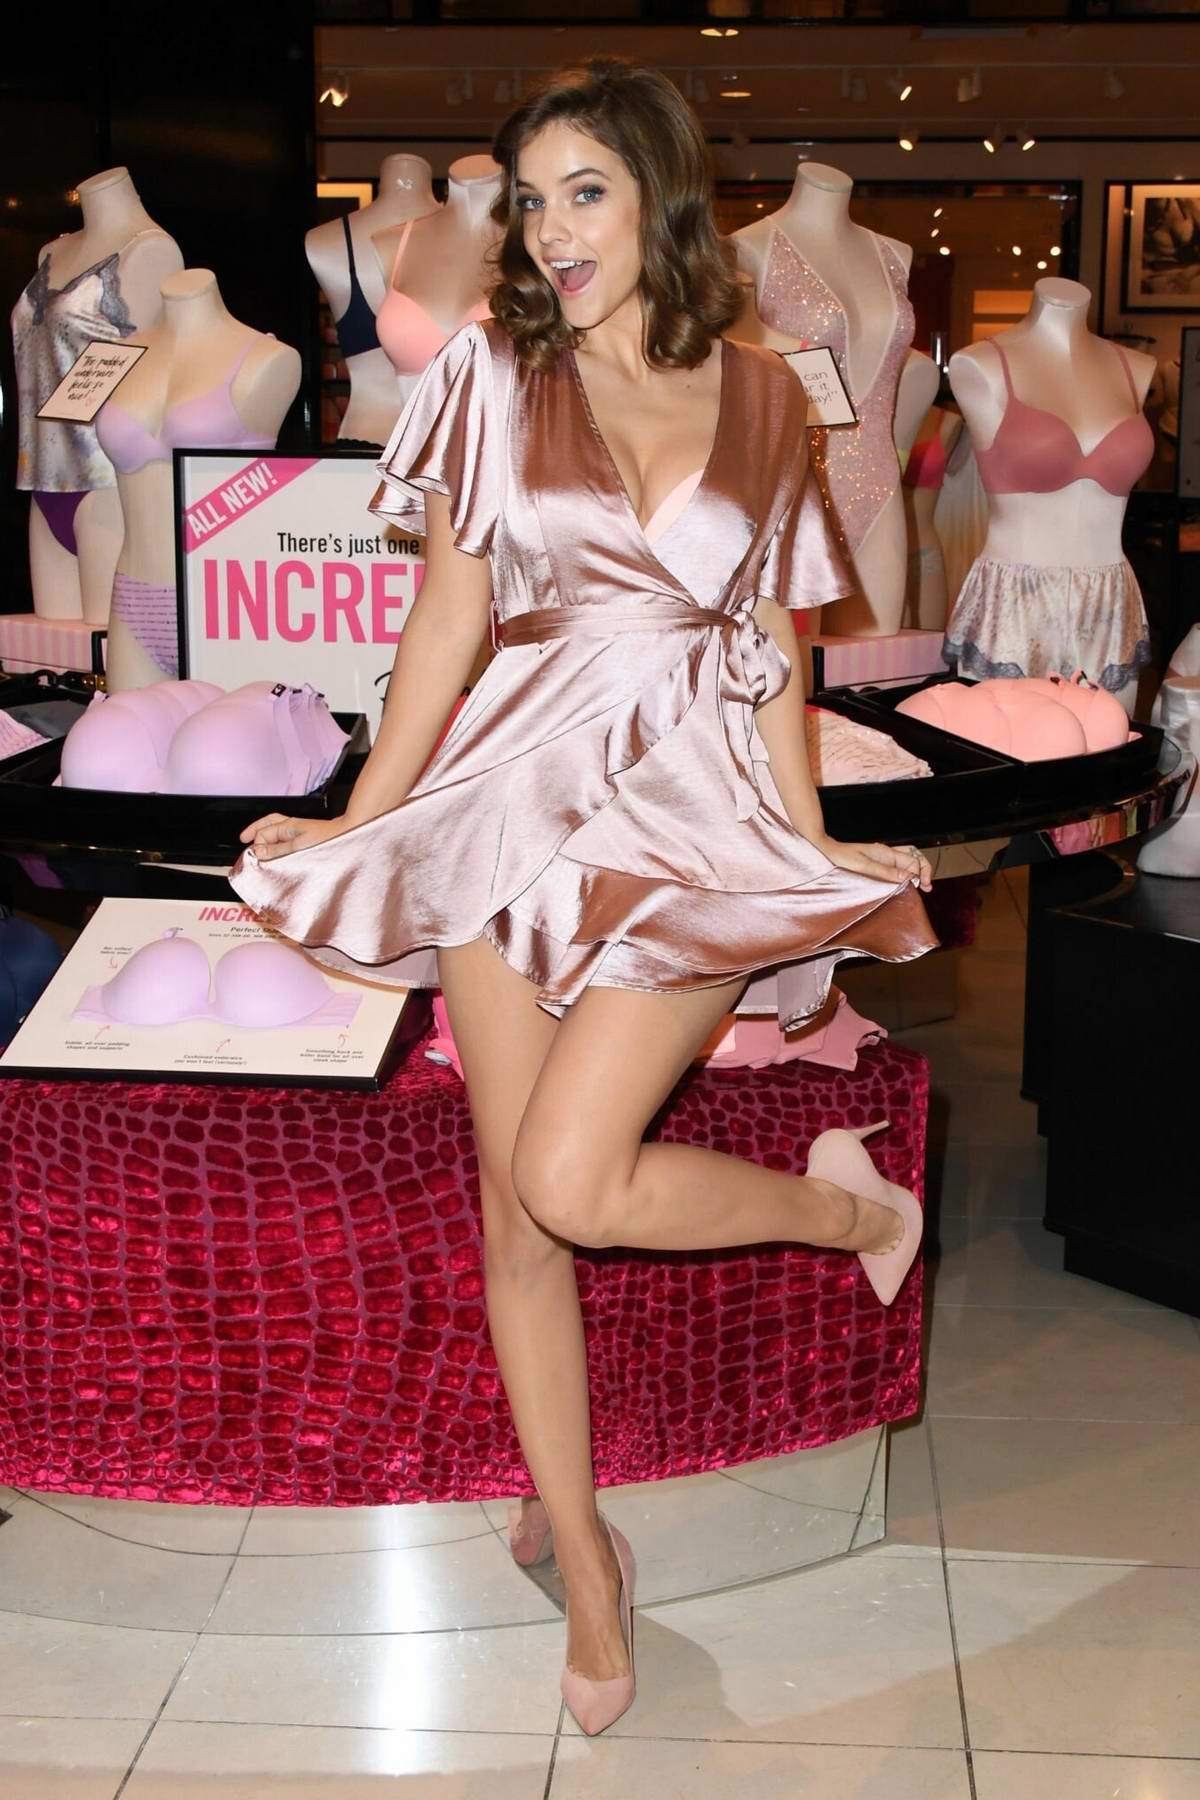 Barbara Palvin attends 'The Incredible Collection' launch tour at the Victoria's Secret store in Beverly Hills, Los Angeles